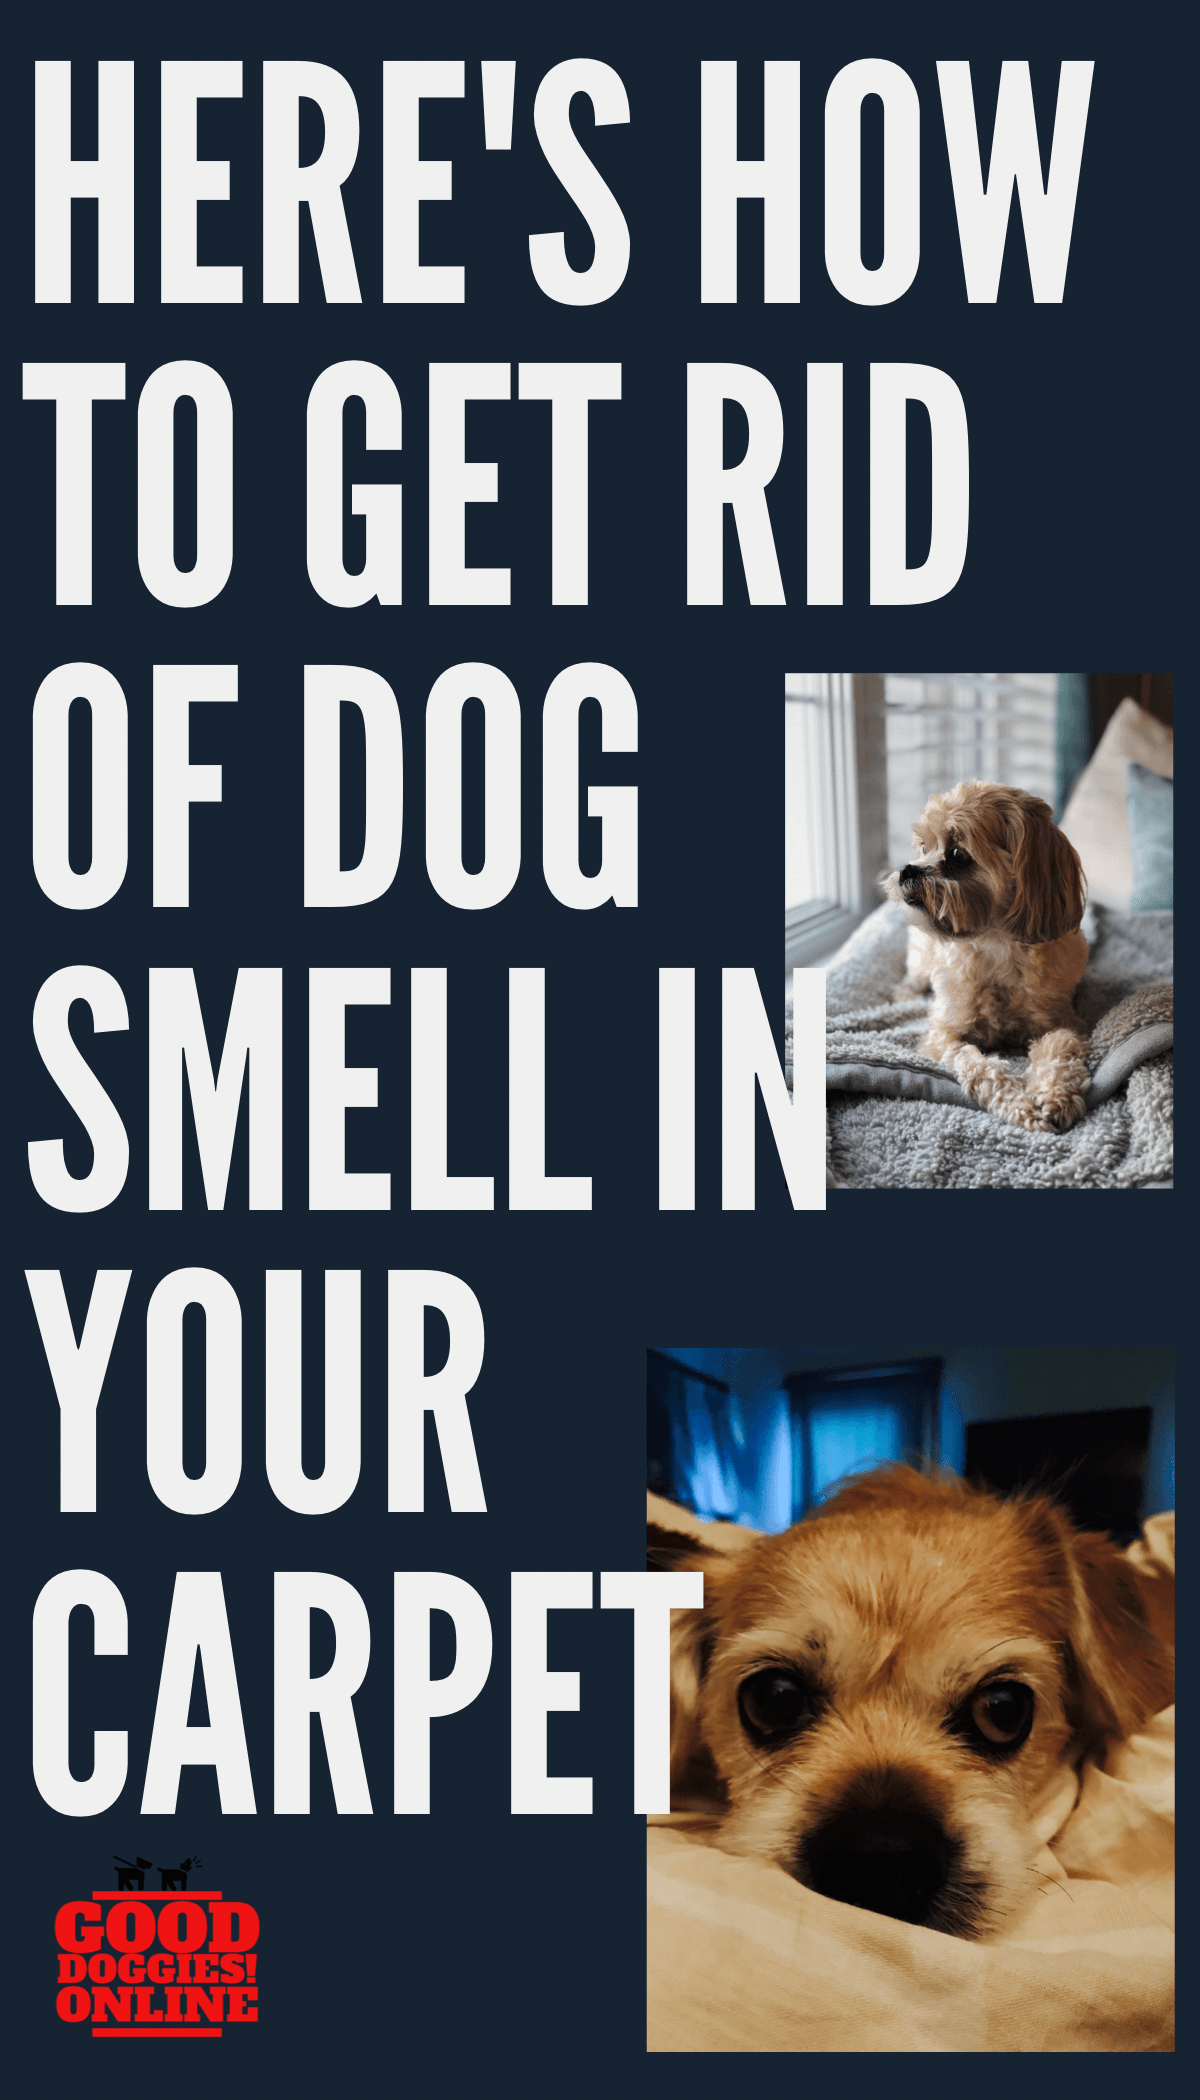 How To Get Dog Smell Out Of Carpet Good Doggies Online Dog Smells Pet Smell Good Doggies Online